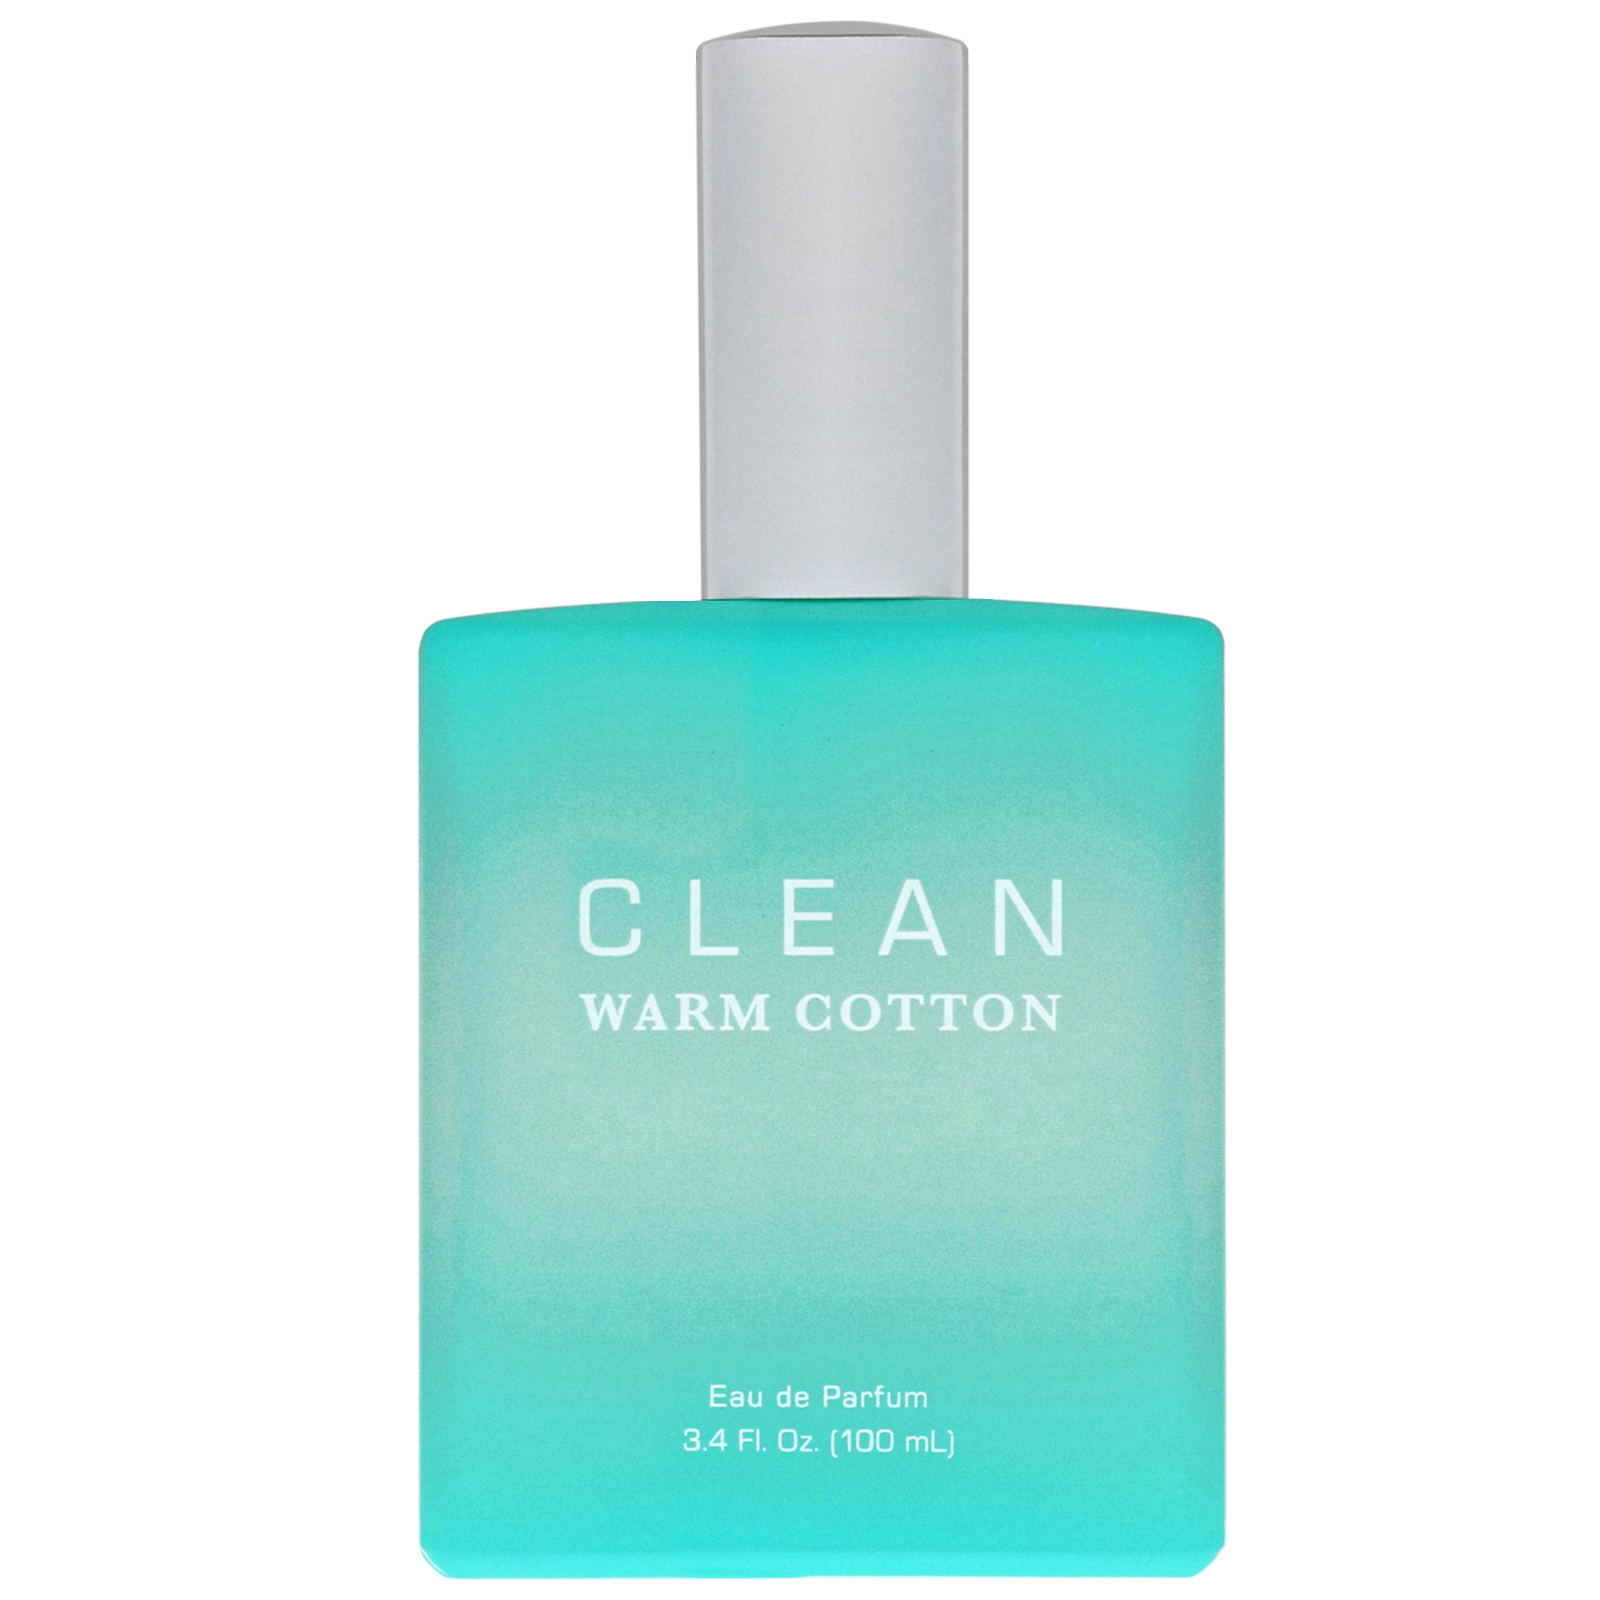 CLEAN Warm Cotton Eau de Parfum Spray 100ml